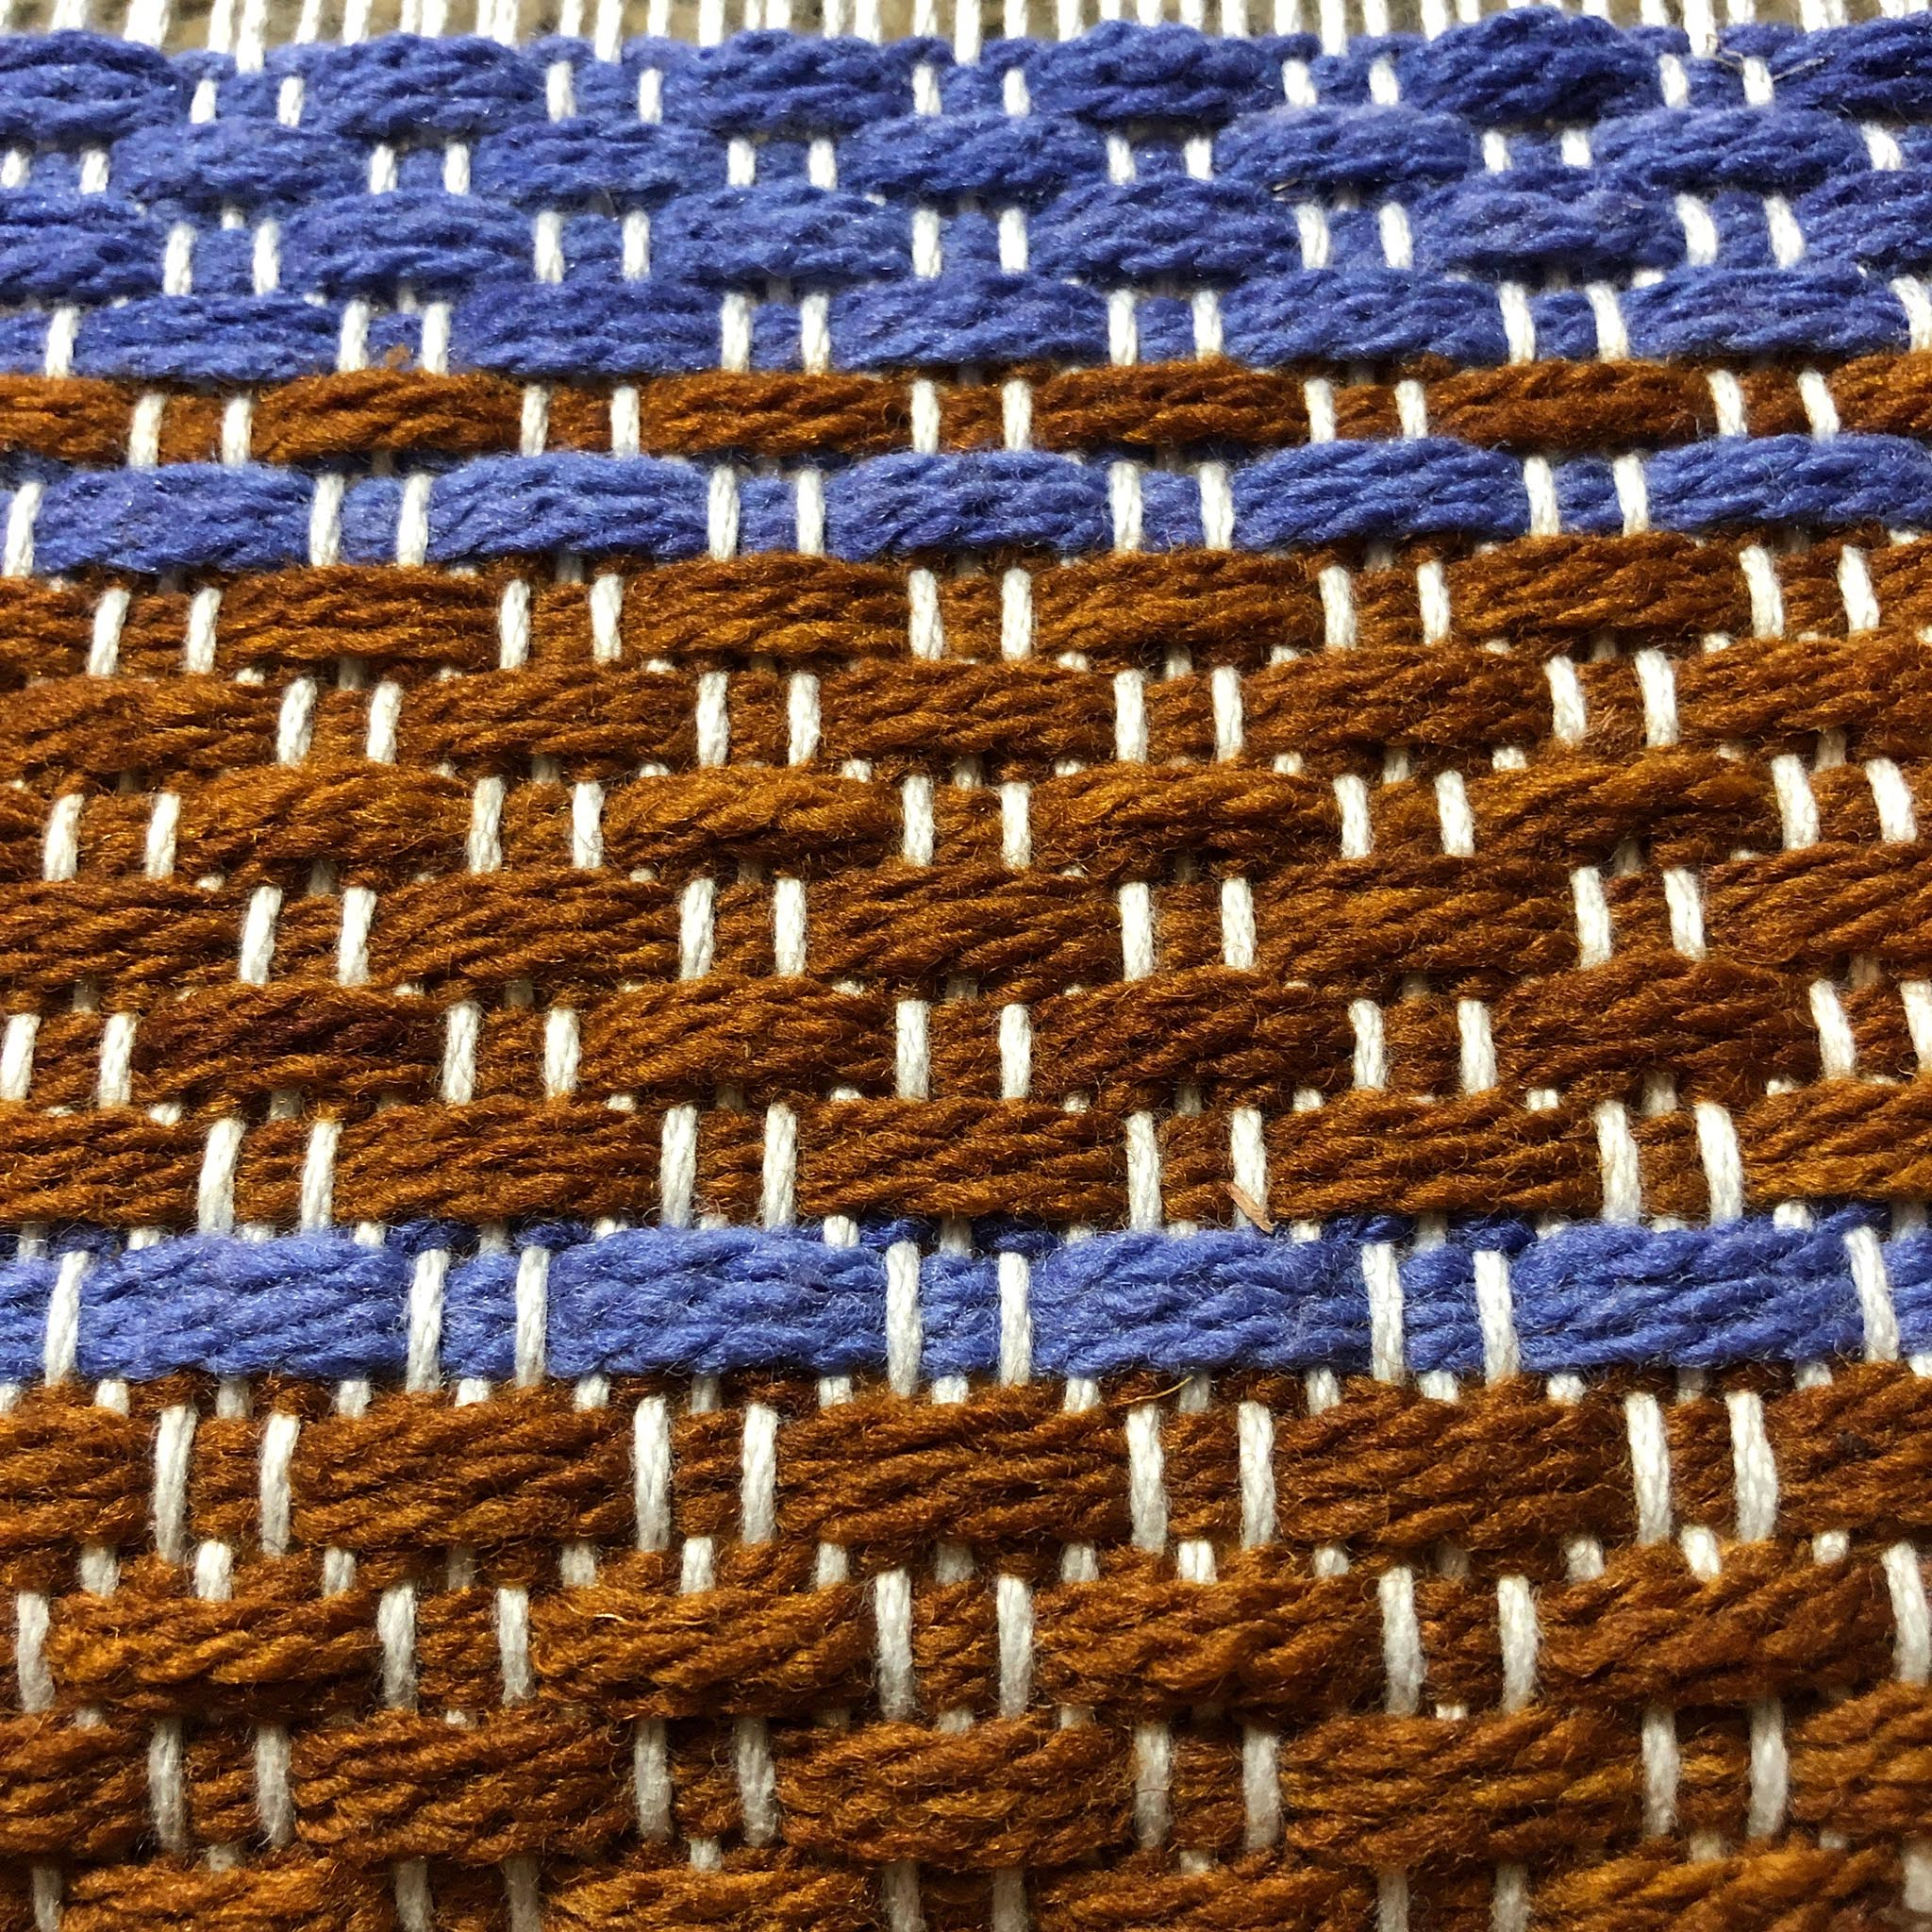 weaving the basketweave rug